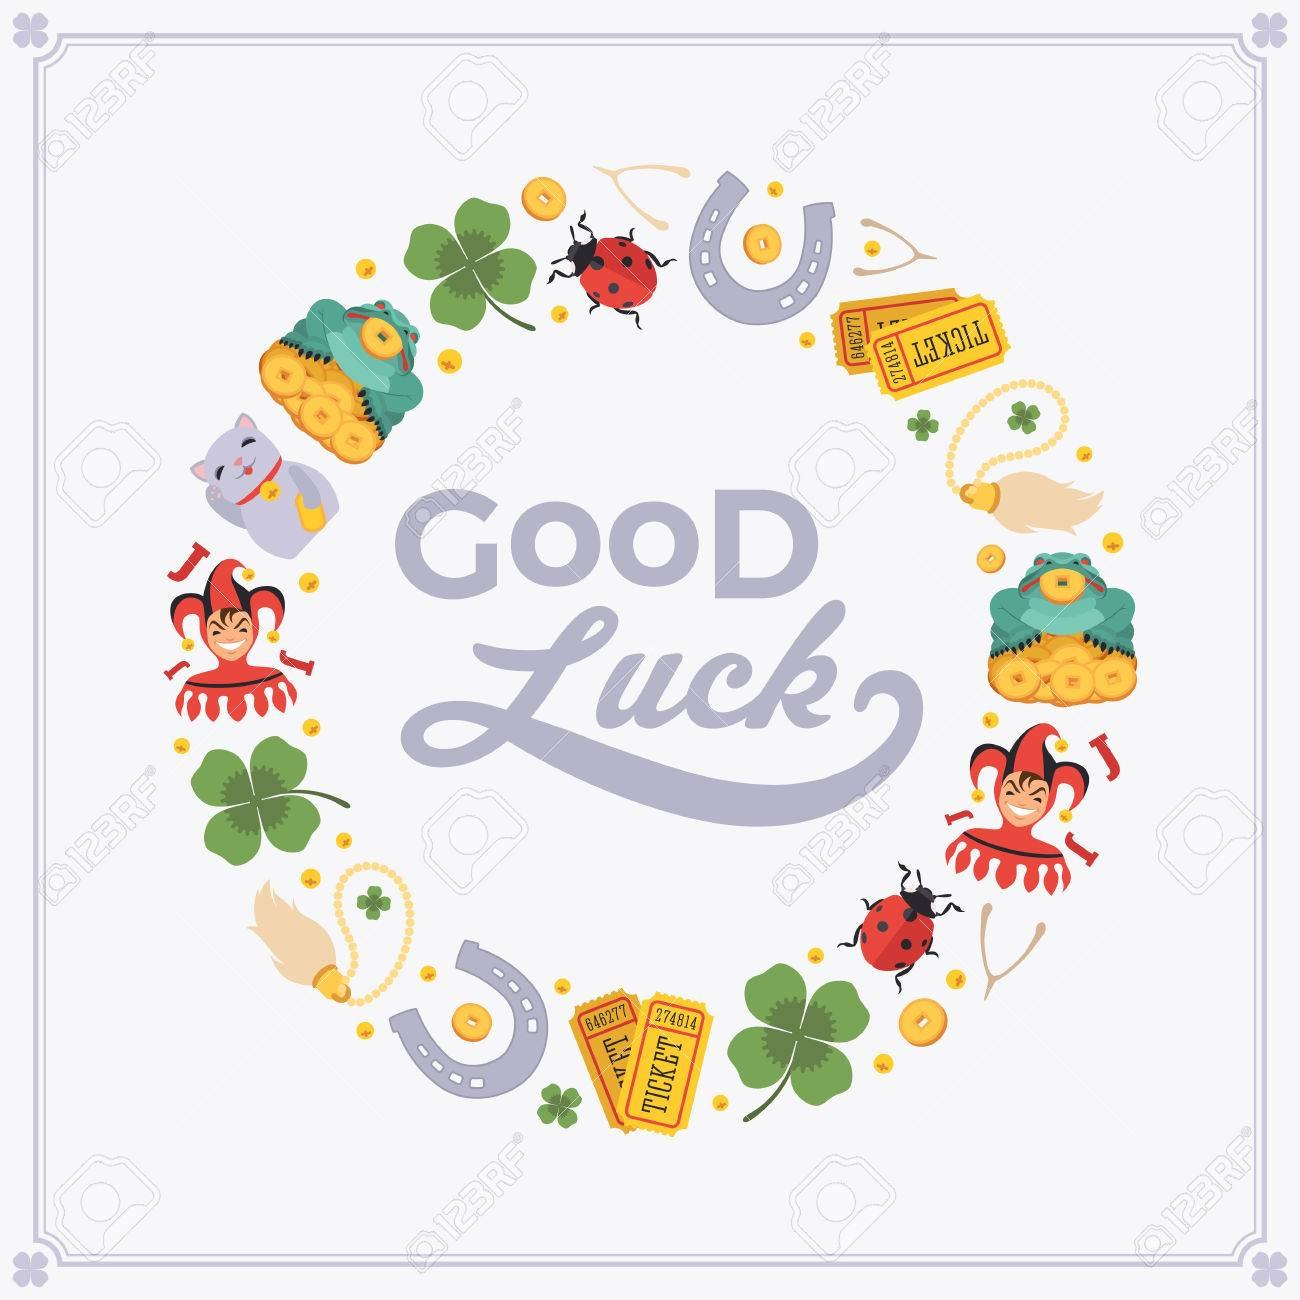 Vector Decorating Design Made Of Lucky Charms And The Words For Good Luck Card Templates